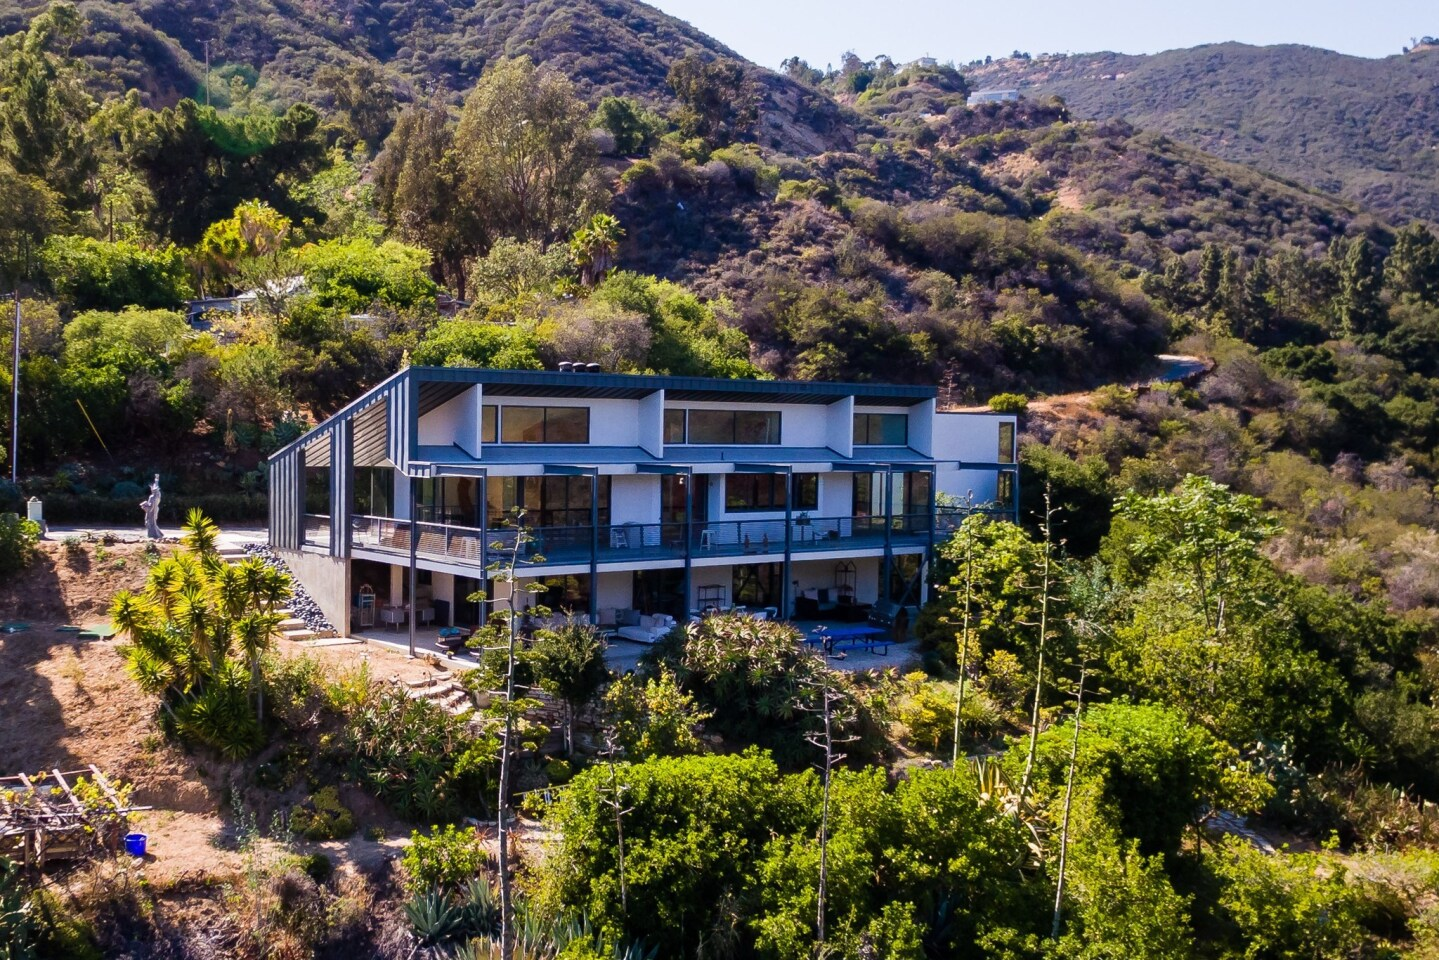 Home of the Day: Industrial chic in Malibu